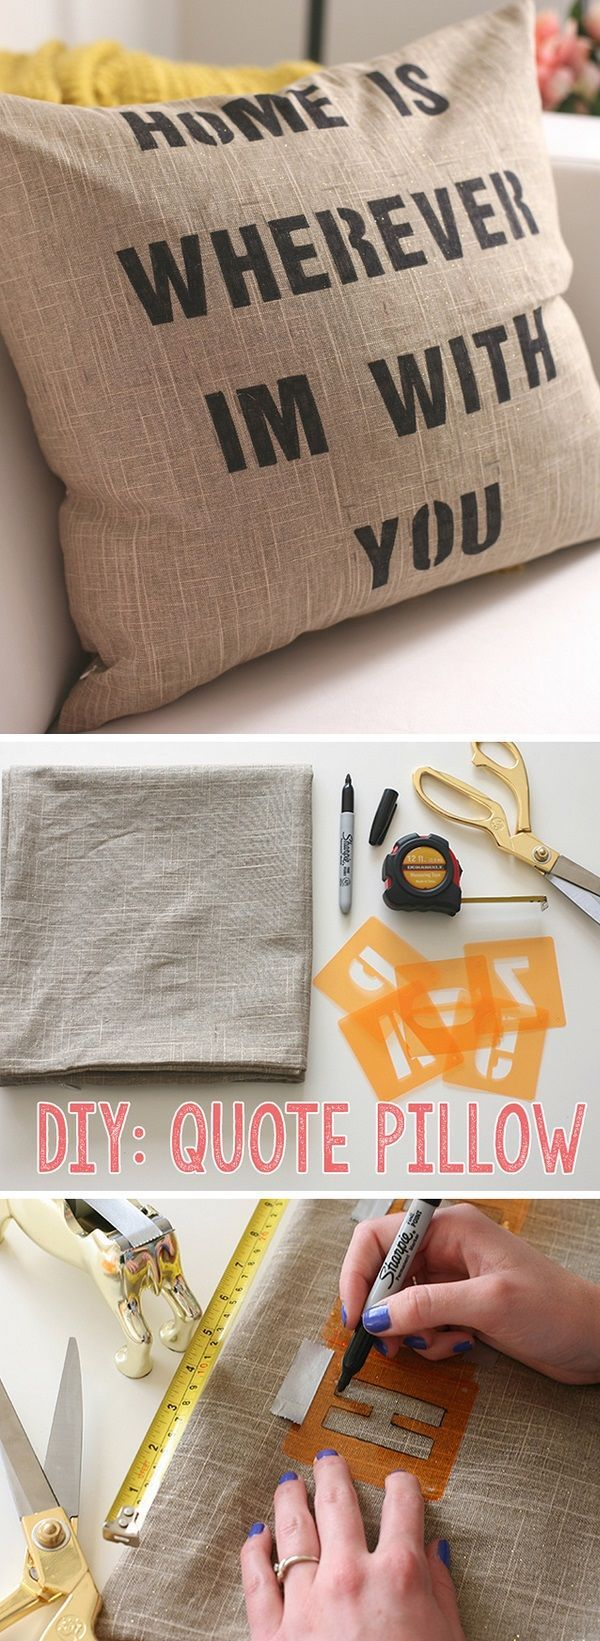 Check out this easy idea on how to make a #DIY quote pillow cover #homedecor on a #budget #crafts #project @istandarddesign